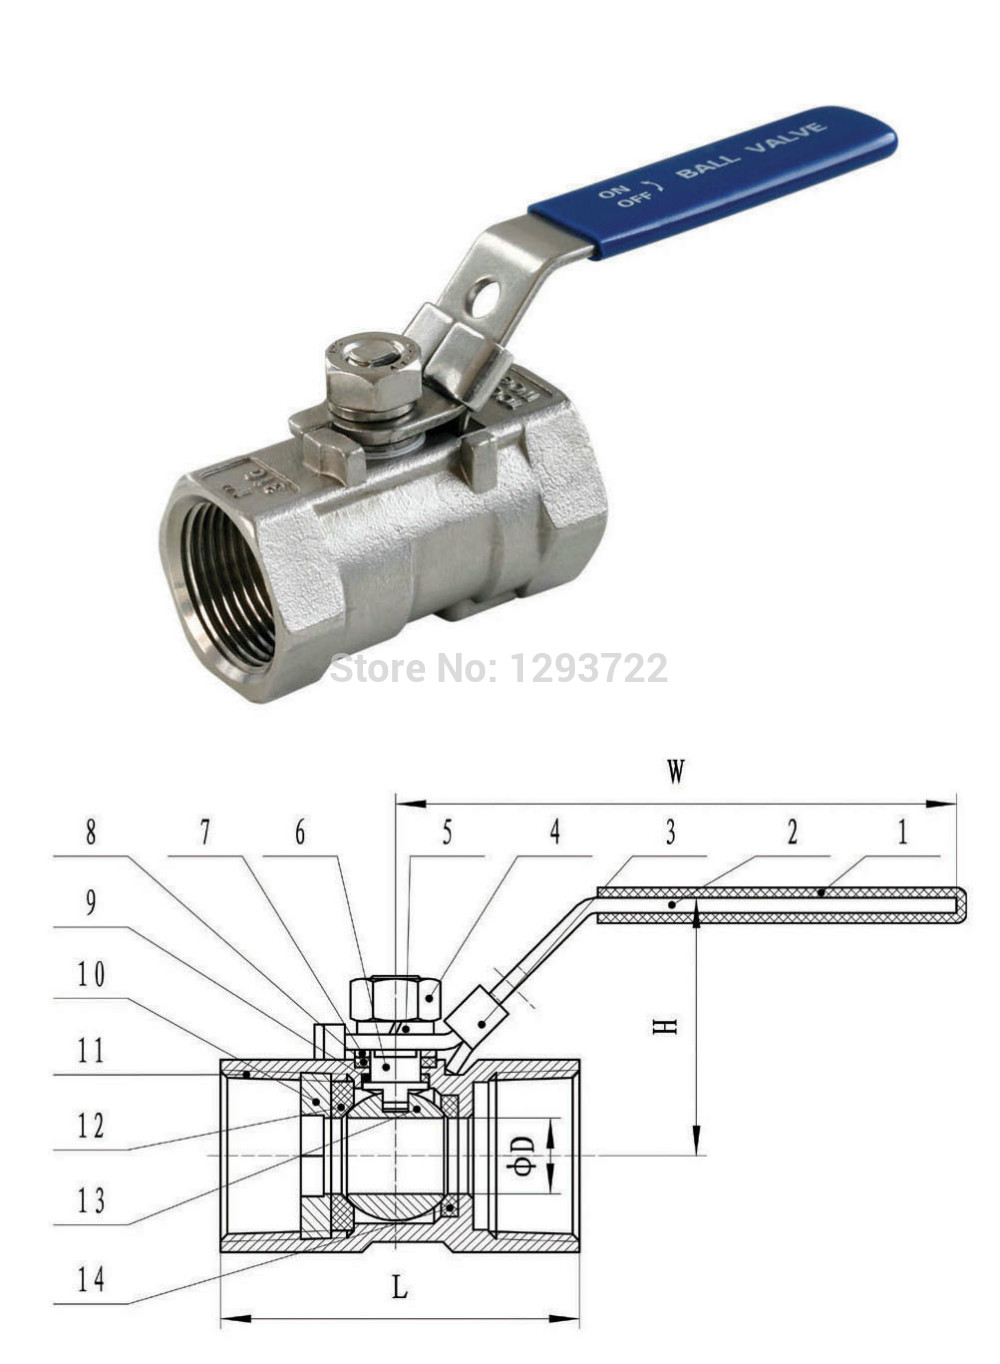 1 1 4 dn32 stainless steel 1 piece ball valve ss304 economical water valve stainless steel ball valve ball valve dn20 in valve from home improvement on  [ 1000 x 1364 Pixel ]